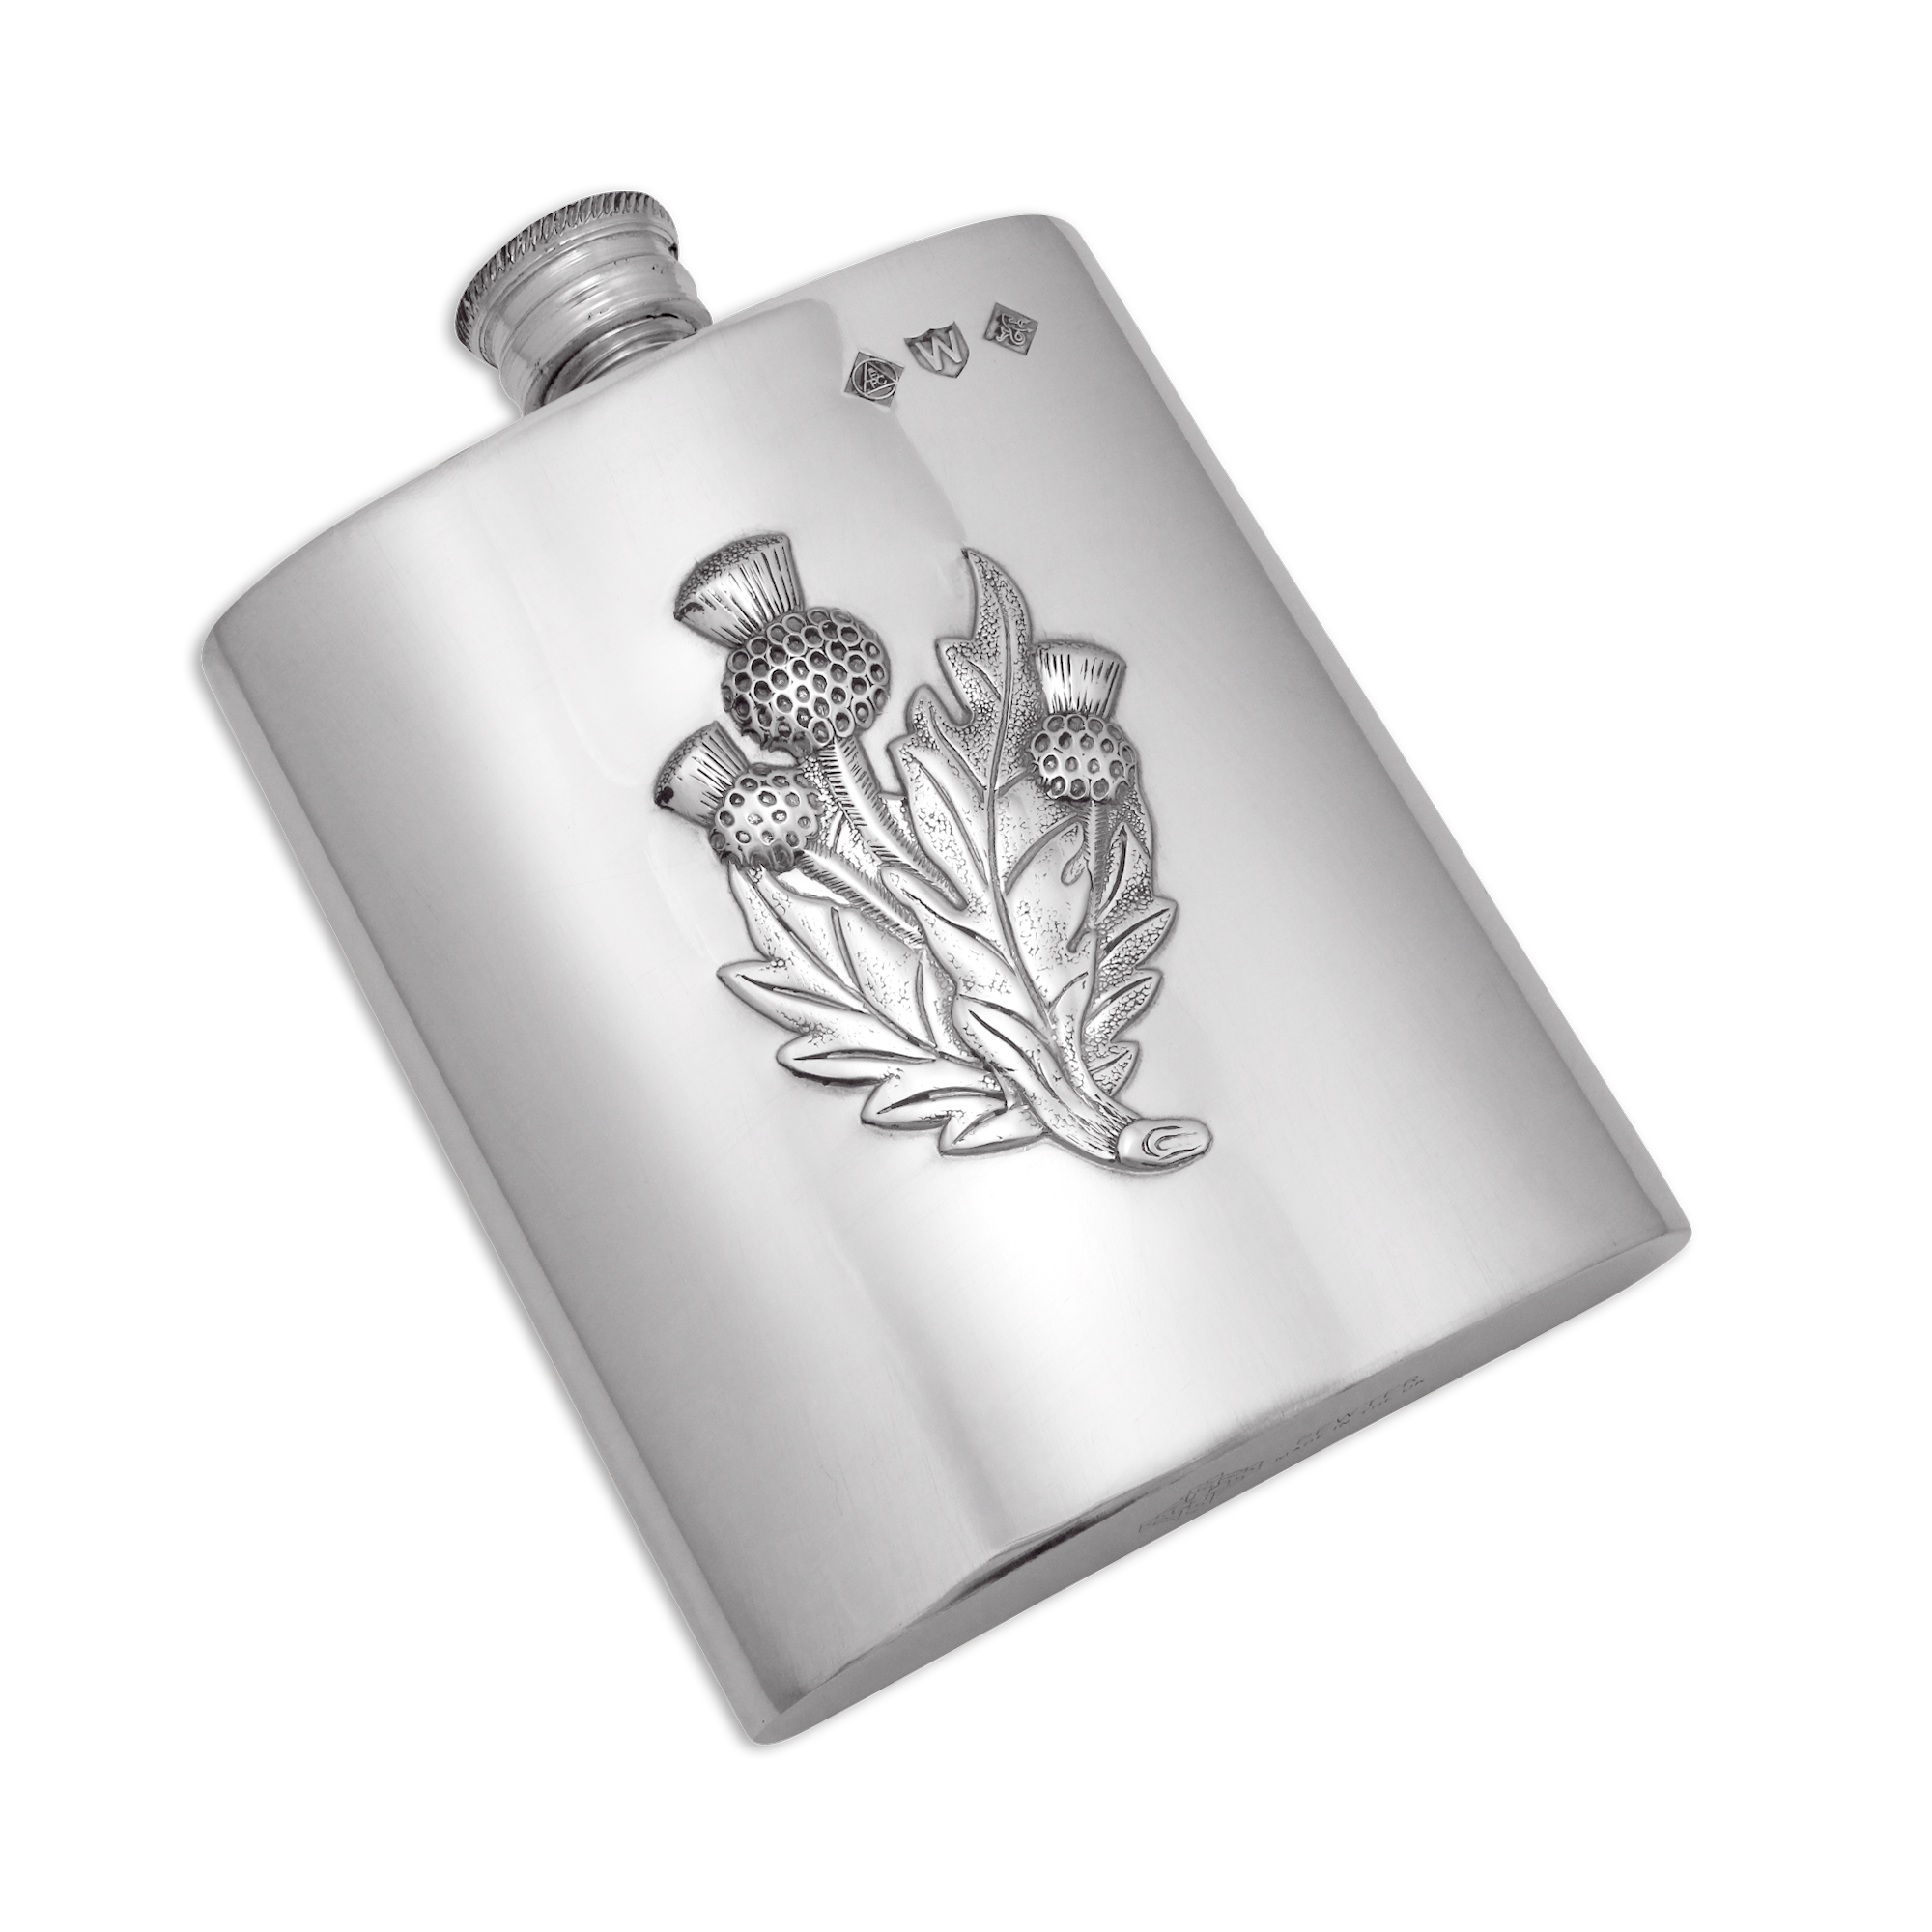 An image of 6oz Handmade Pewter Thistle Hip Flask